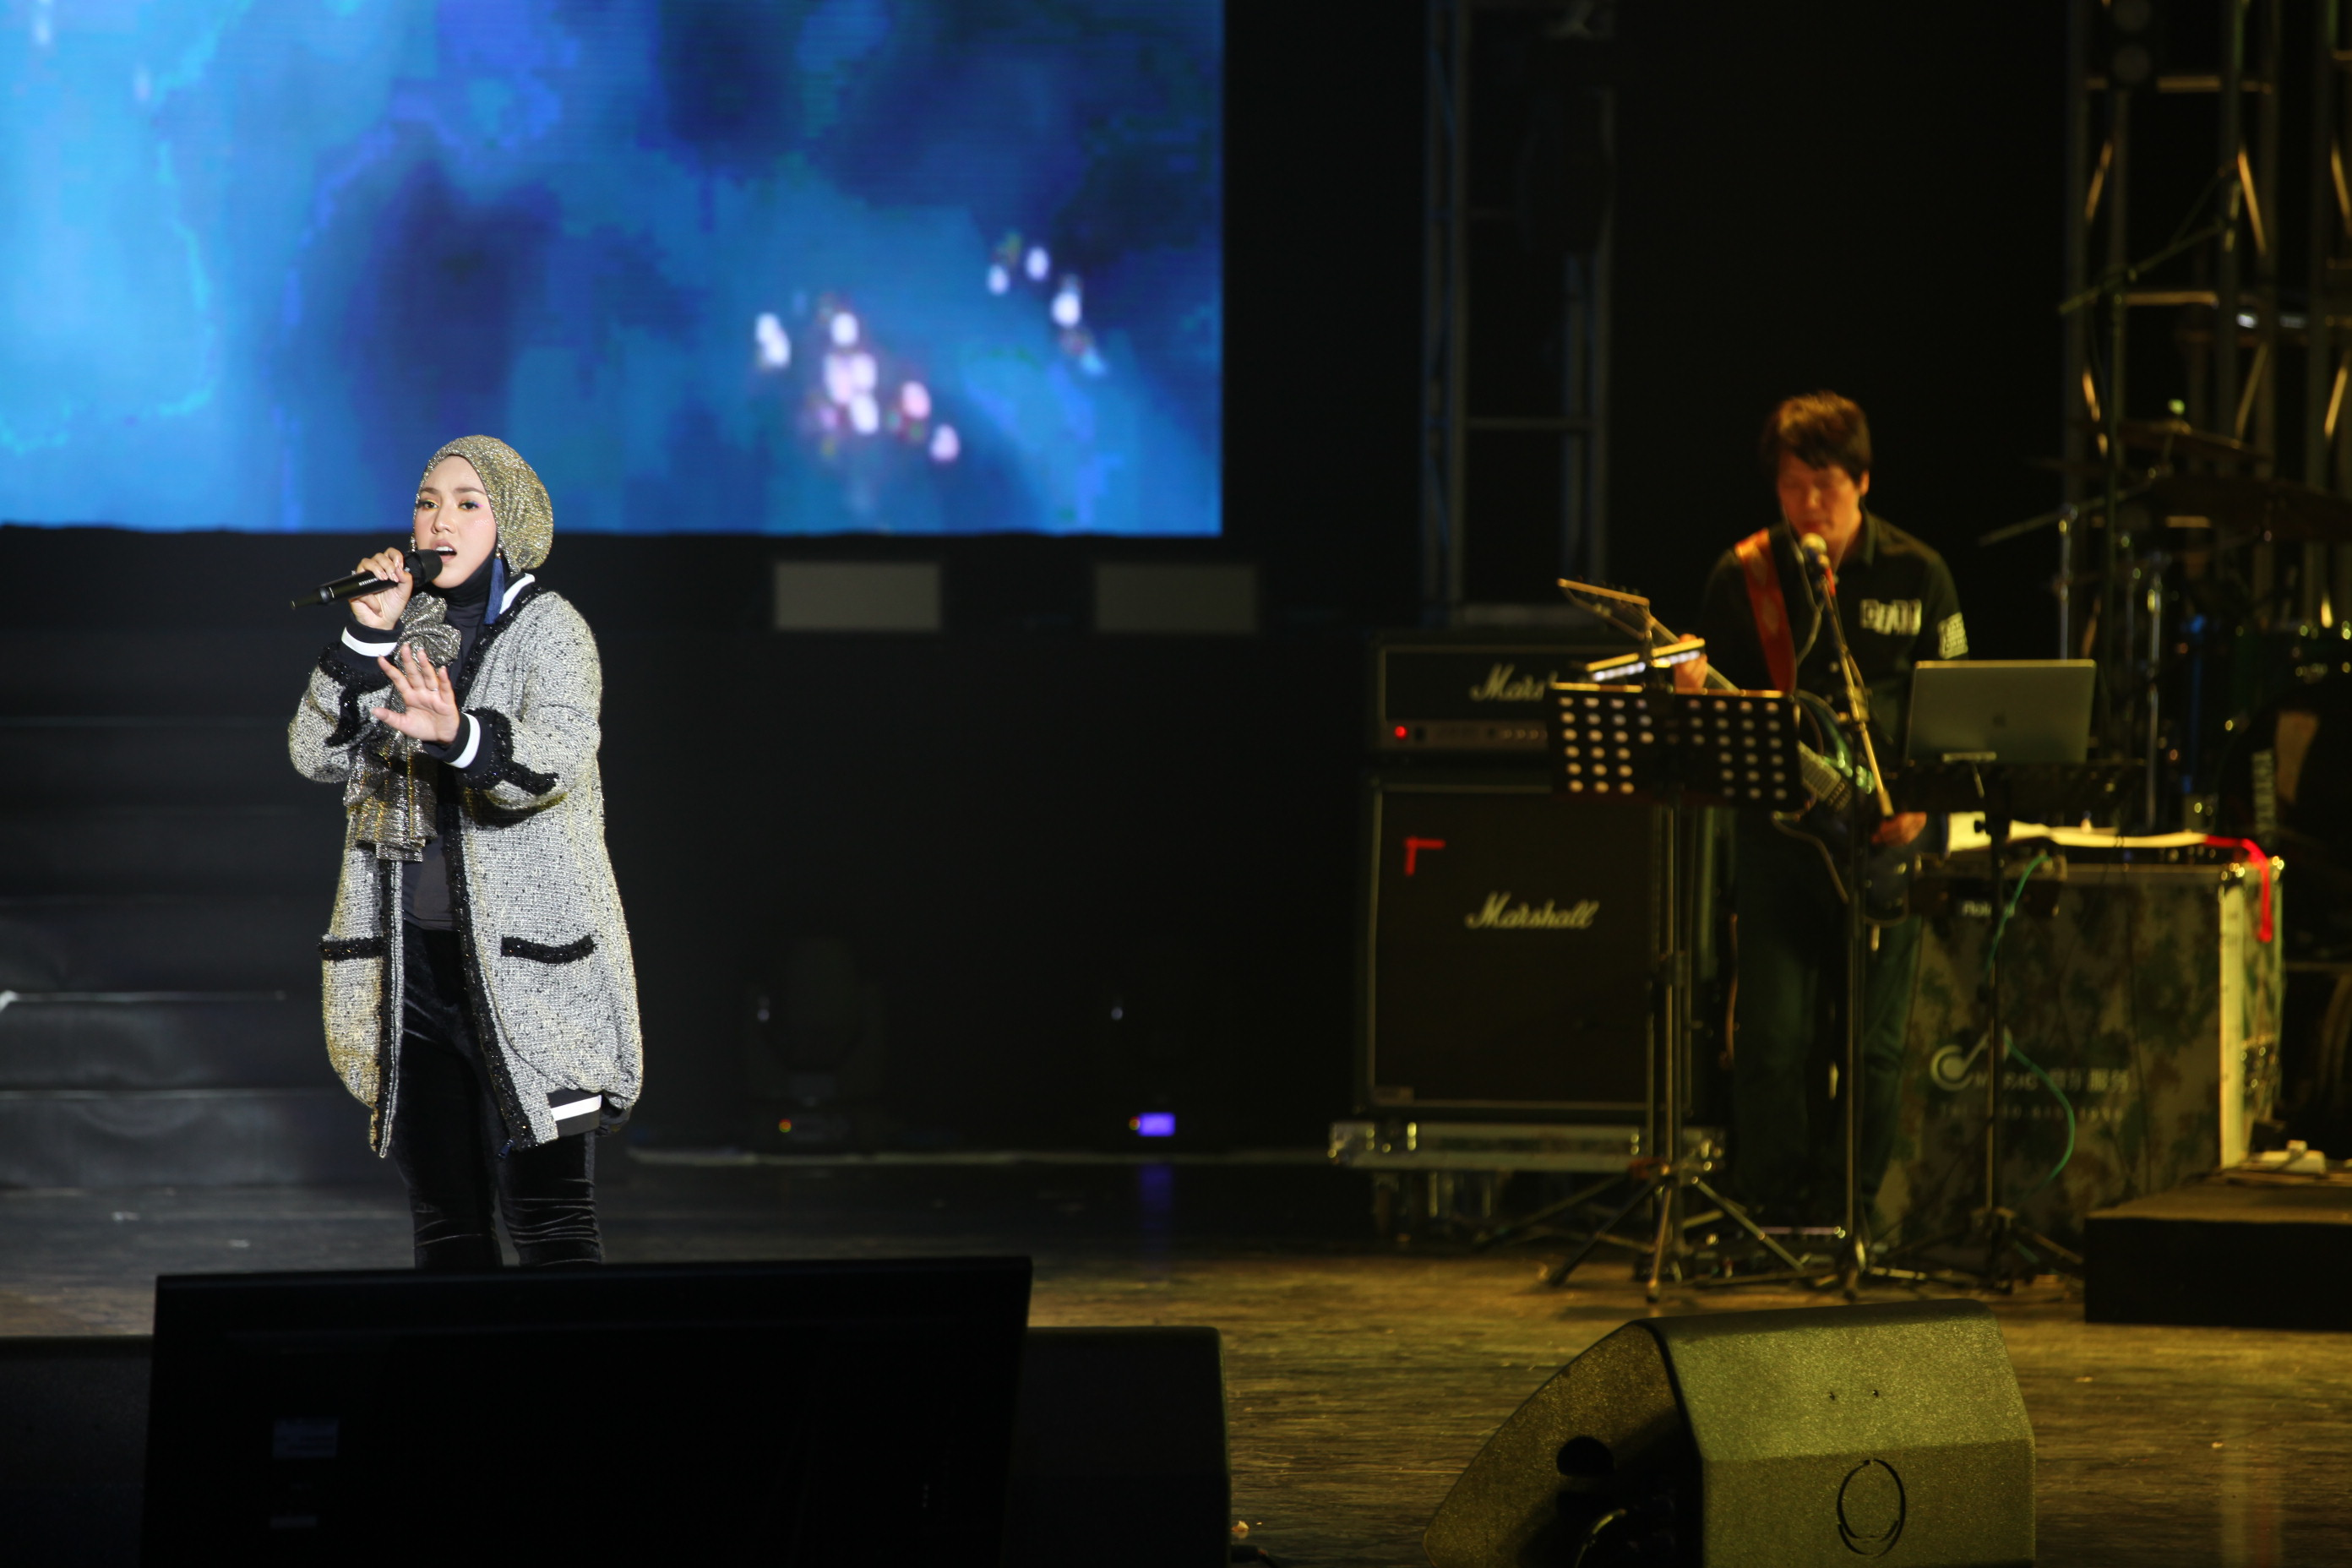 Shila amzah's beijing solo show ended successfully.